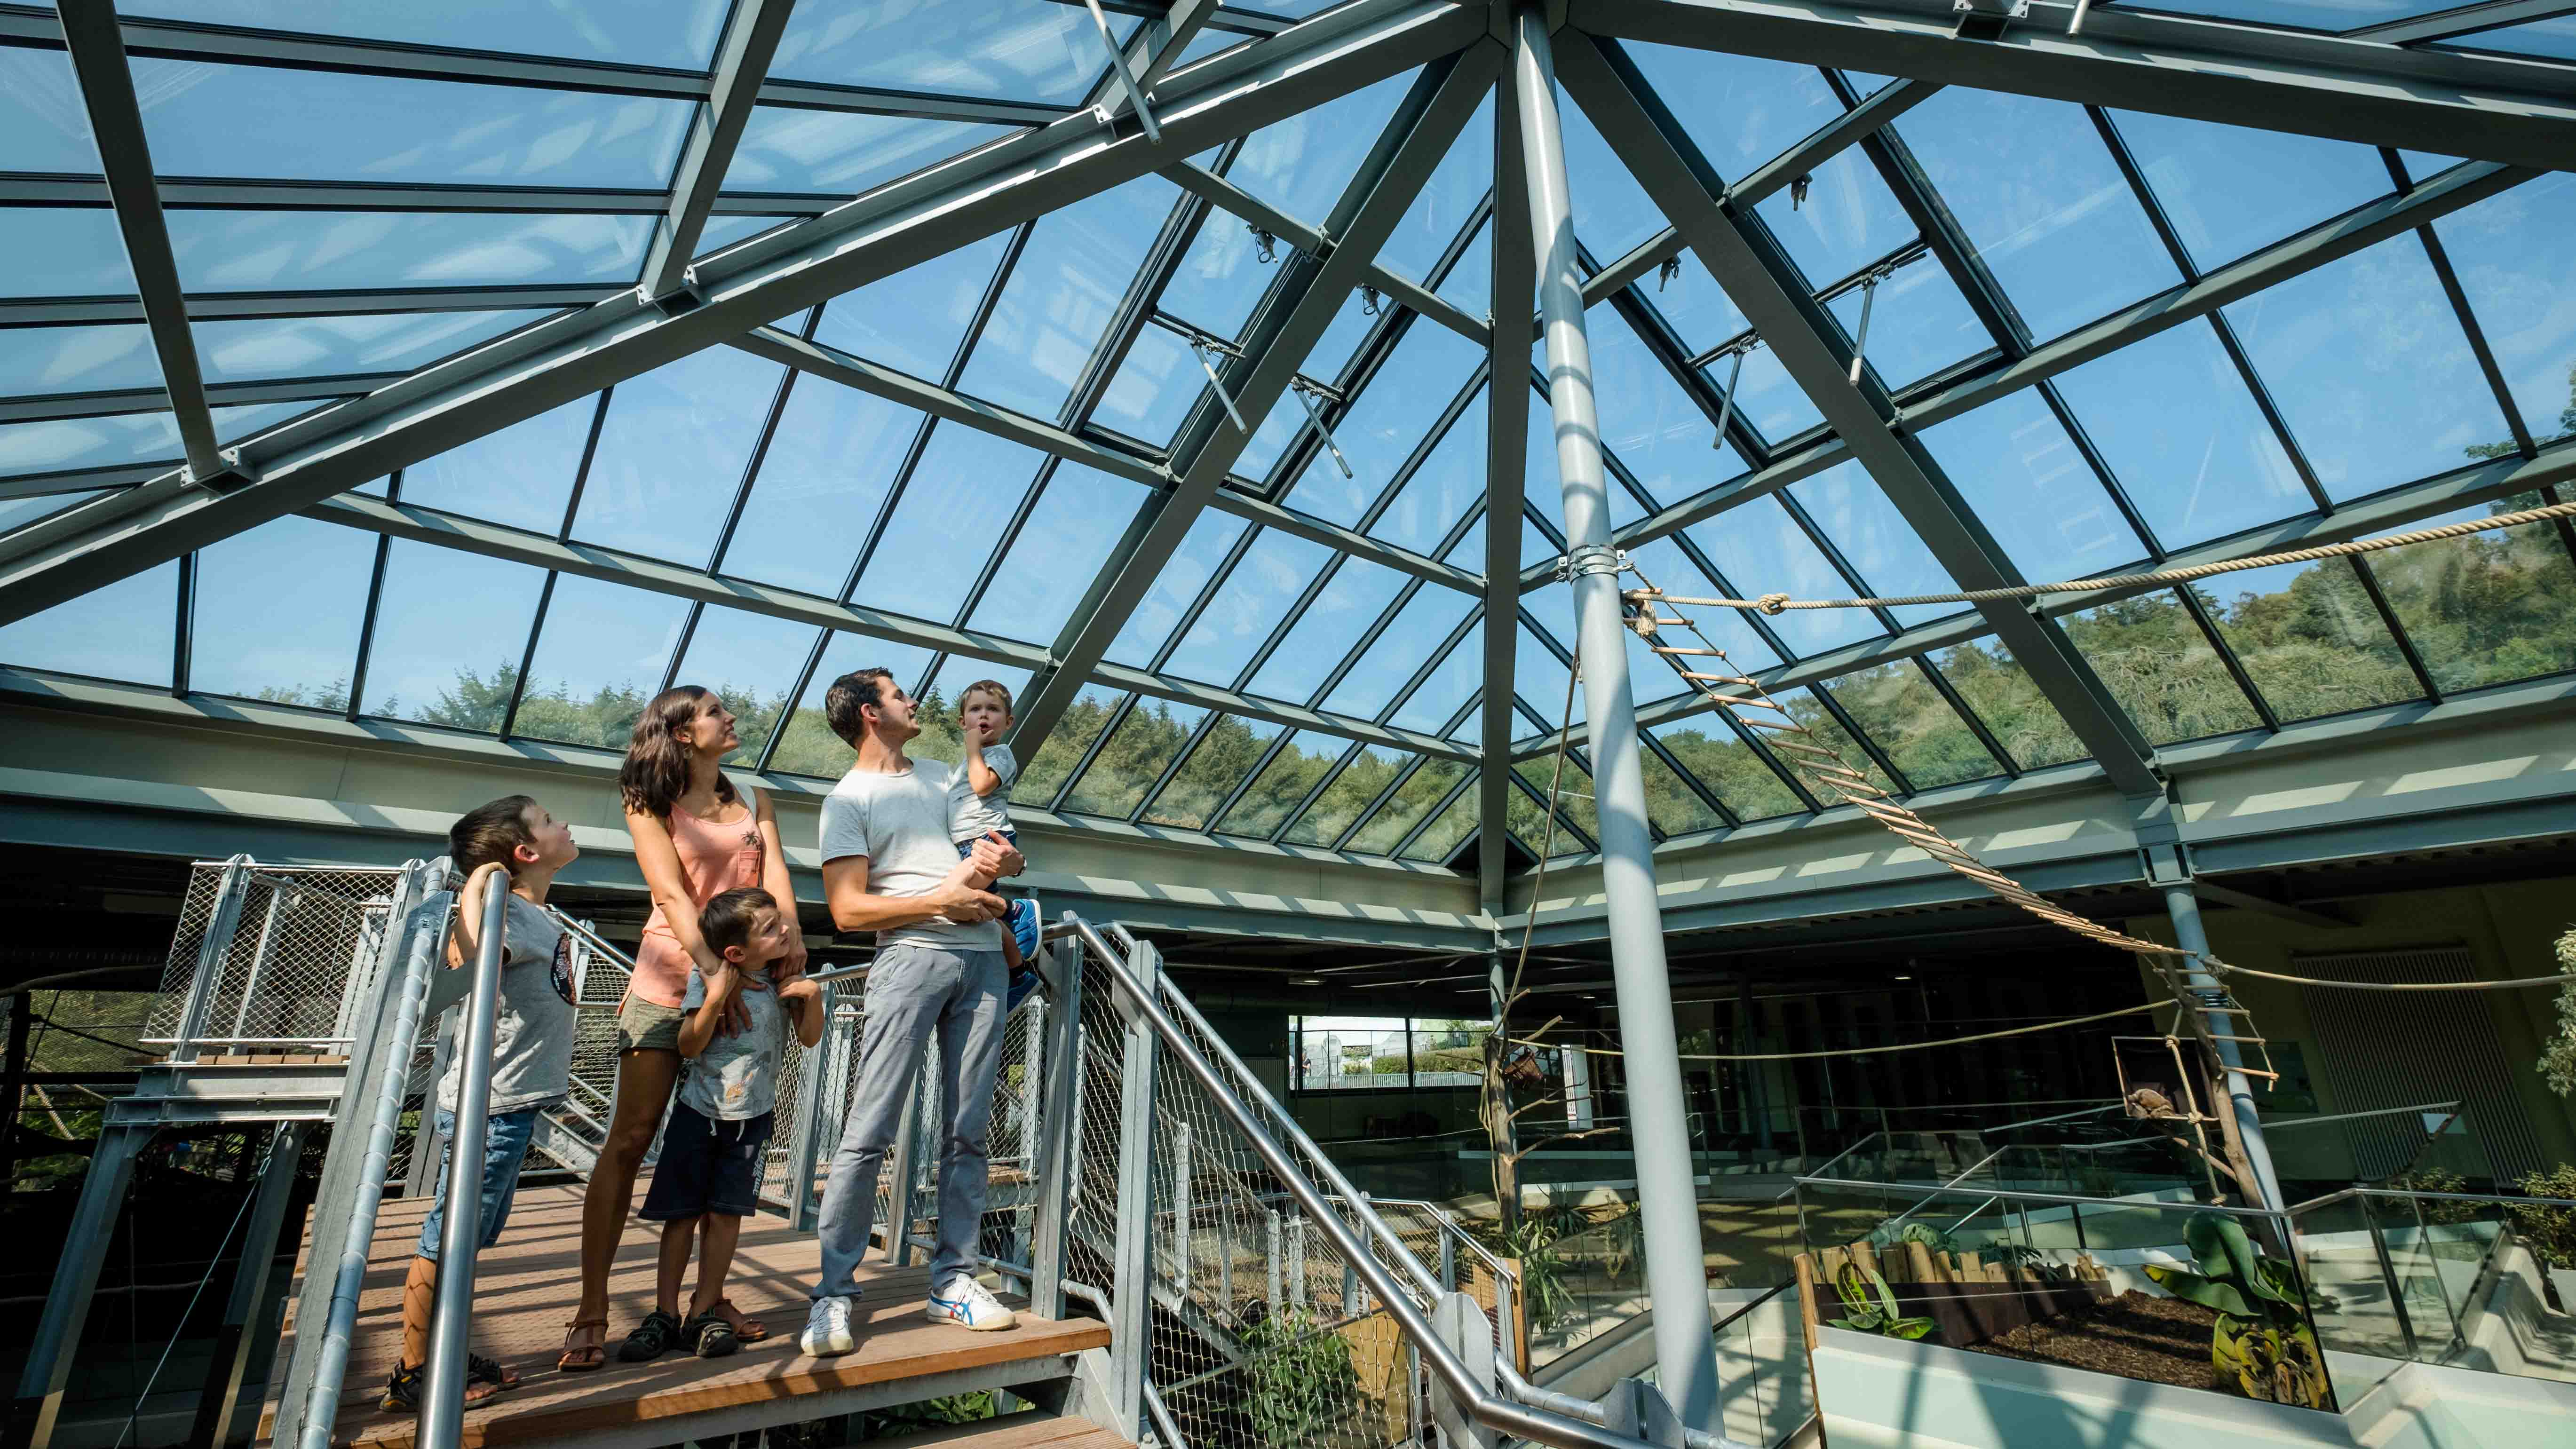 LAMILUX Glass Roof PR60 at the Zoo in Neuwied (Germany)